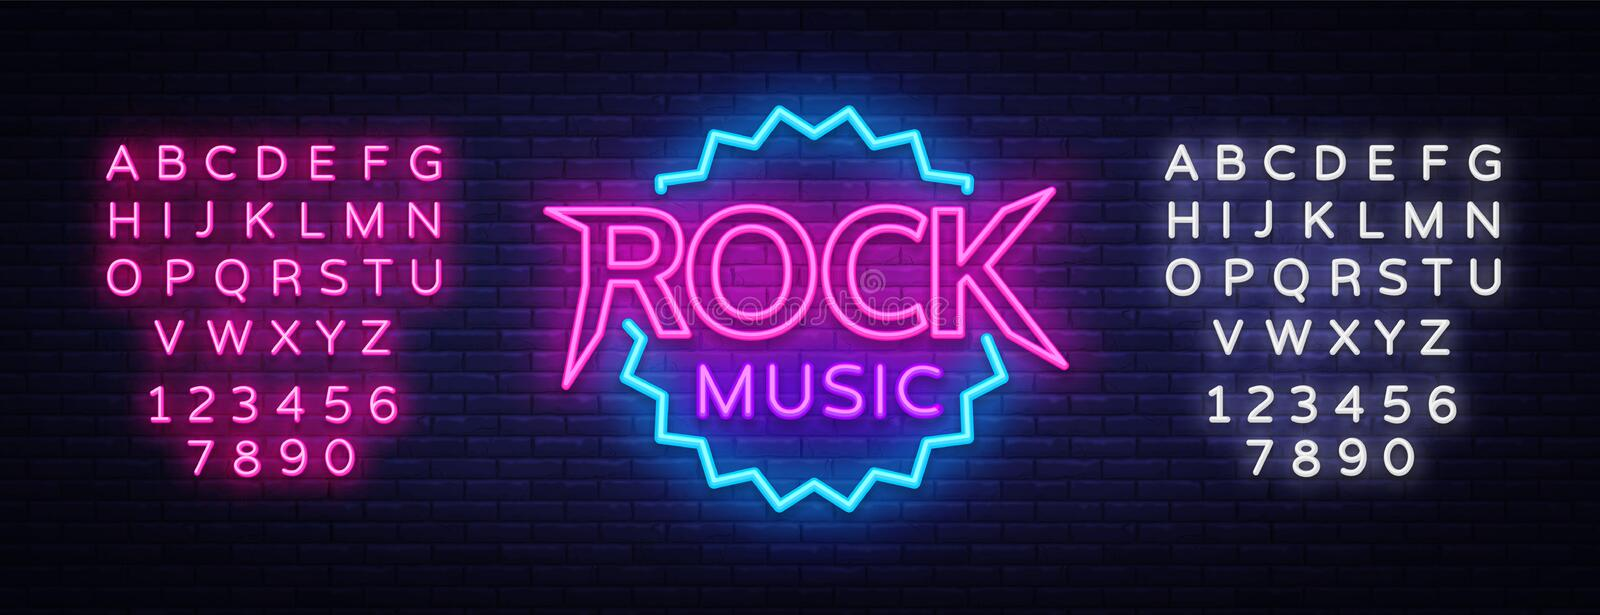 Rock Music Vector Neon. Rock Music Neon Sign, Bright Night Sign, Light Banner, Neon Night Live Music Promotion. Nightlife Vector. Editing text neon sign vector illustration